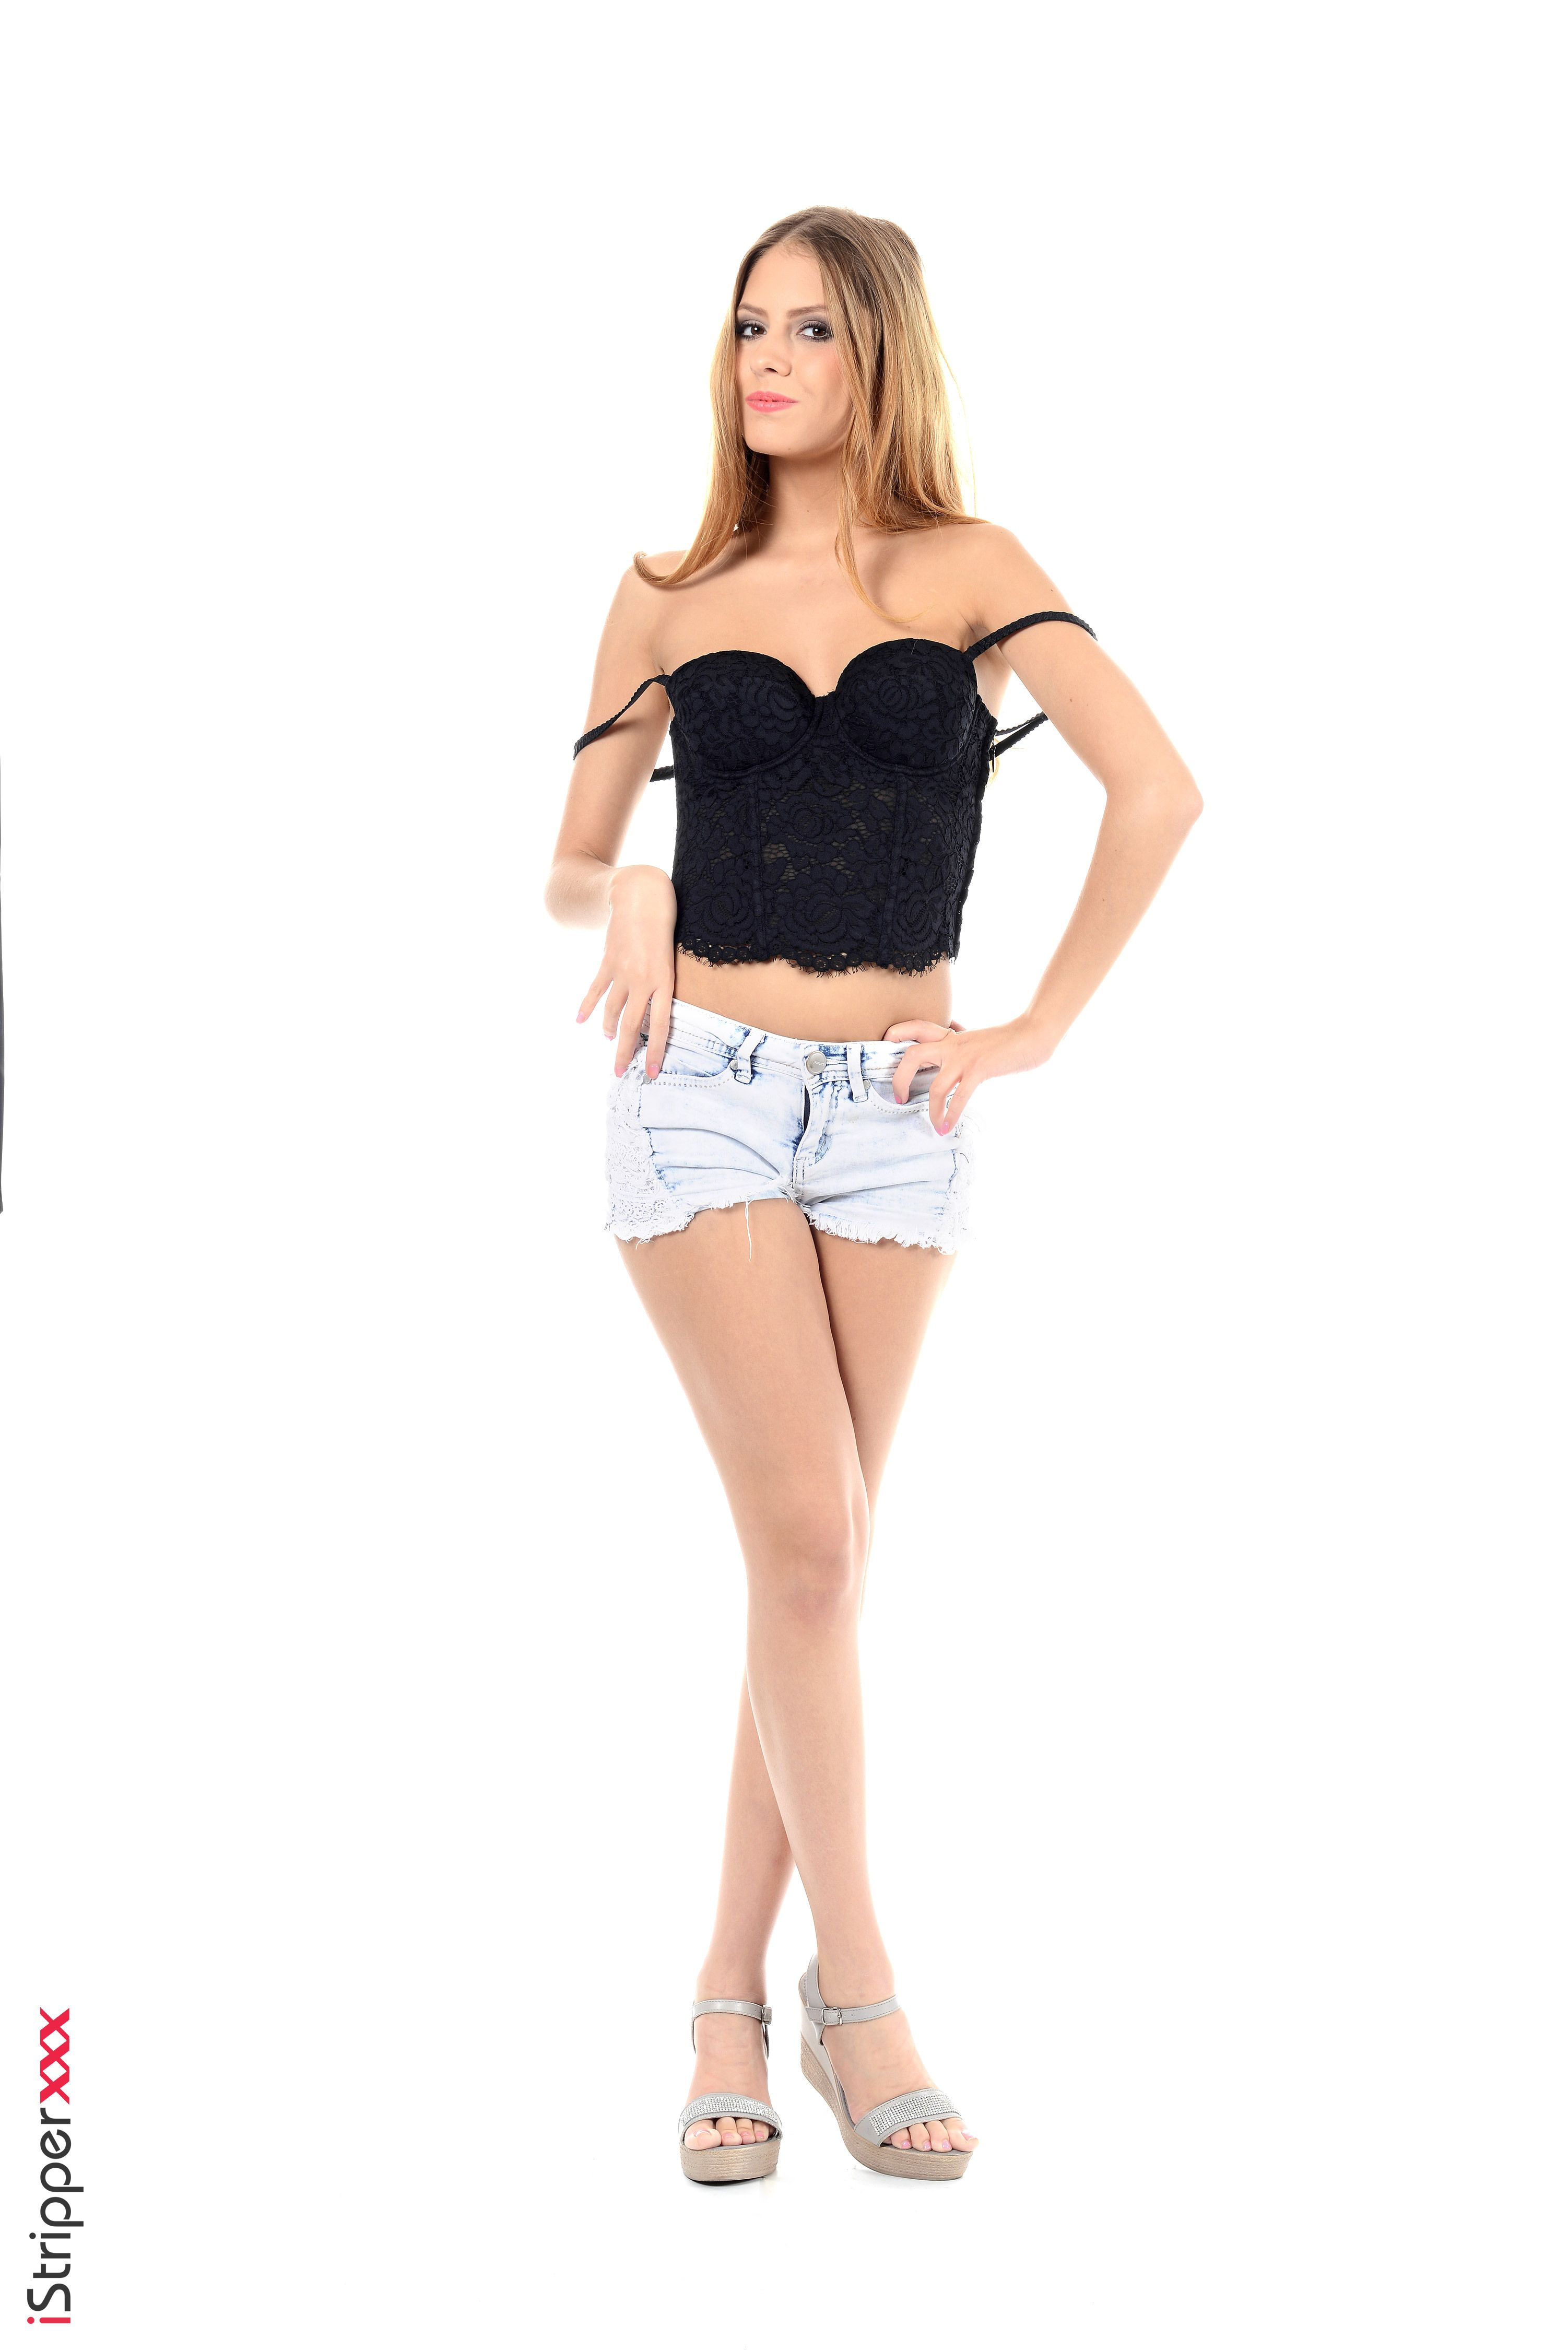 Women's Clothing Systematic Women Body Top Skinny Sexy Bodysuit Autumn Winter Spring Ladies Slim Square Collar Short Sleeve Bodysuit 2019 To Have A Unique National Style